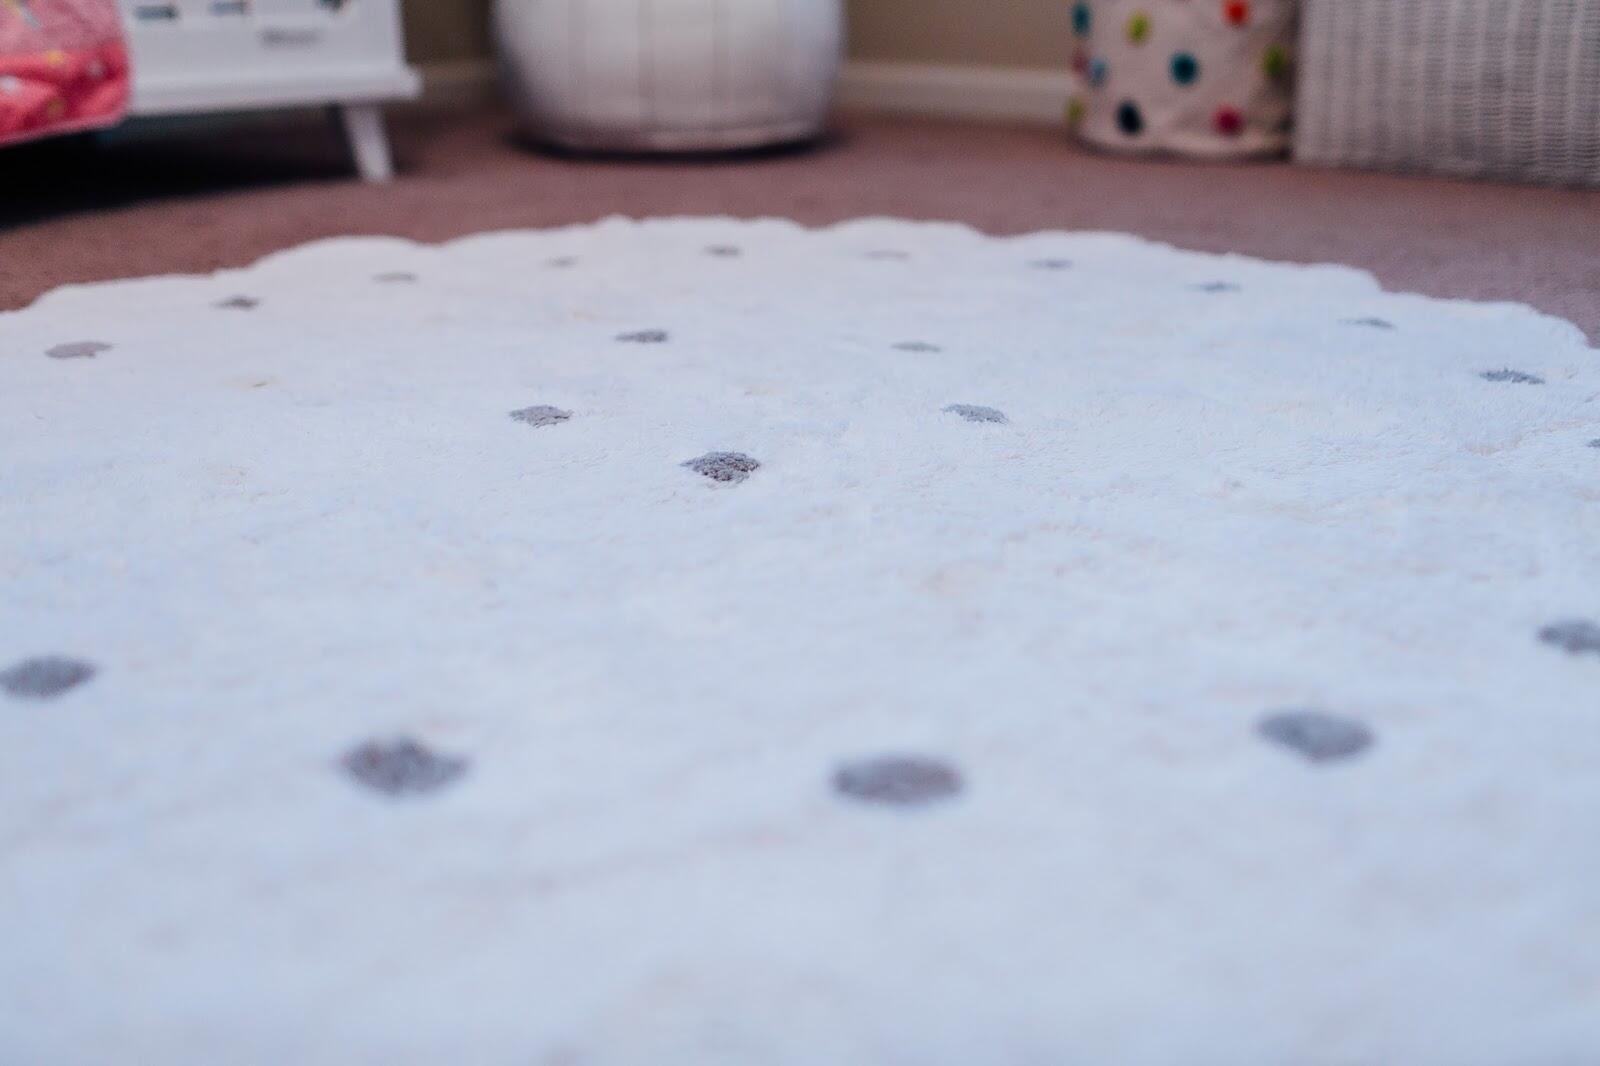 How to Choose a Rug for Your Child's Room by lifestyle blogger Laura of Walking in Memphis in High Heels